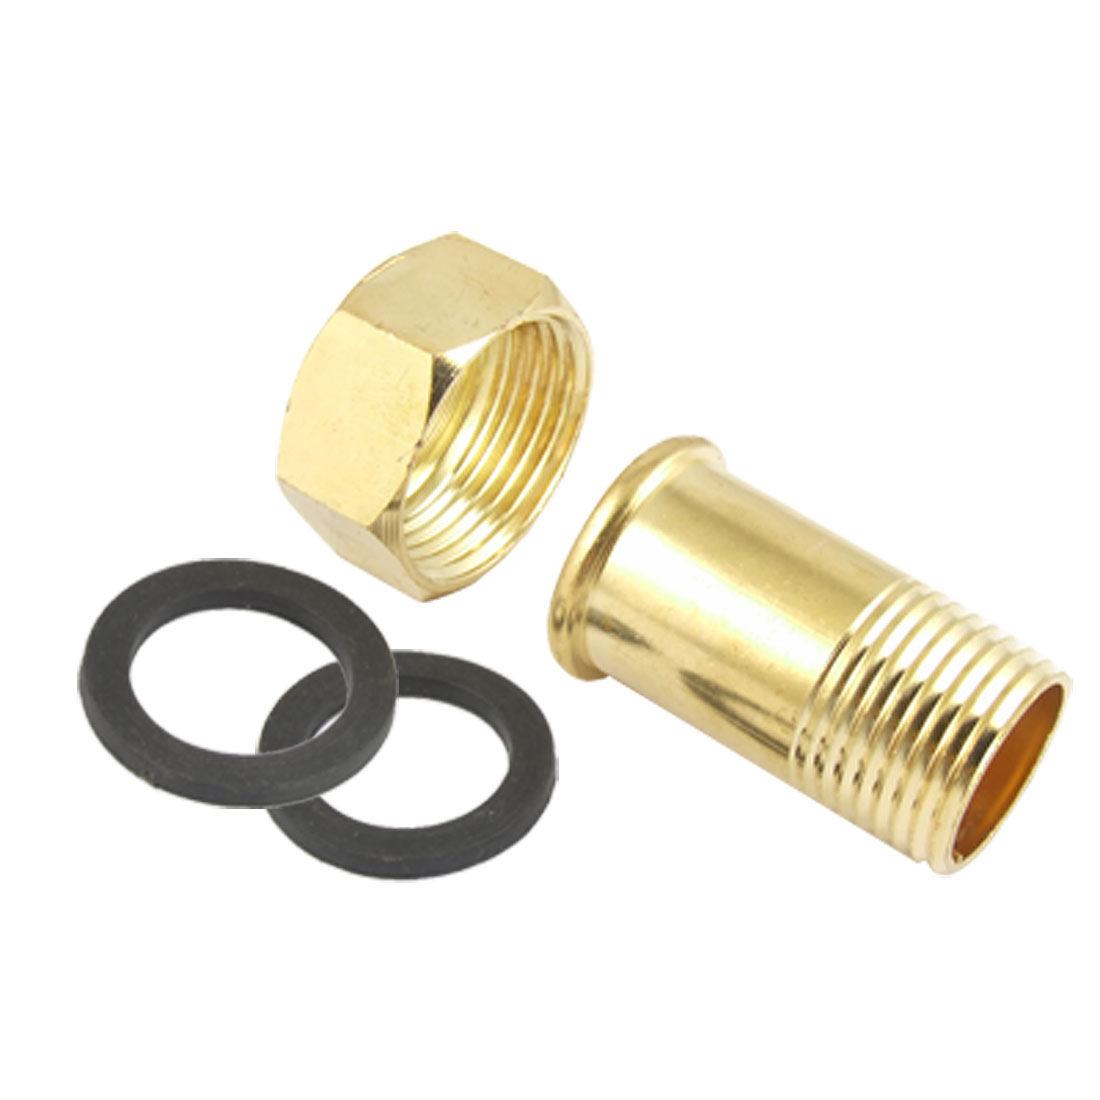 Plumbing Fitting 20 x 24.5mm M/F Thread Water Meter Connector